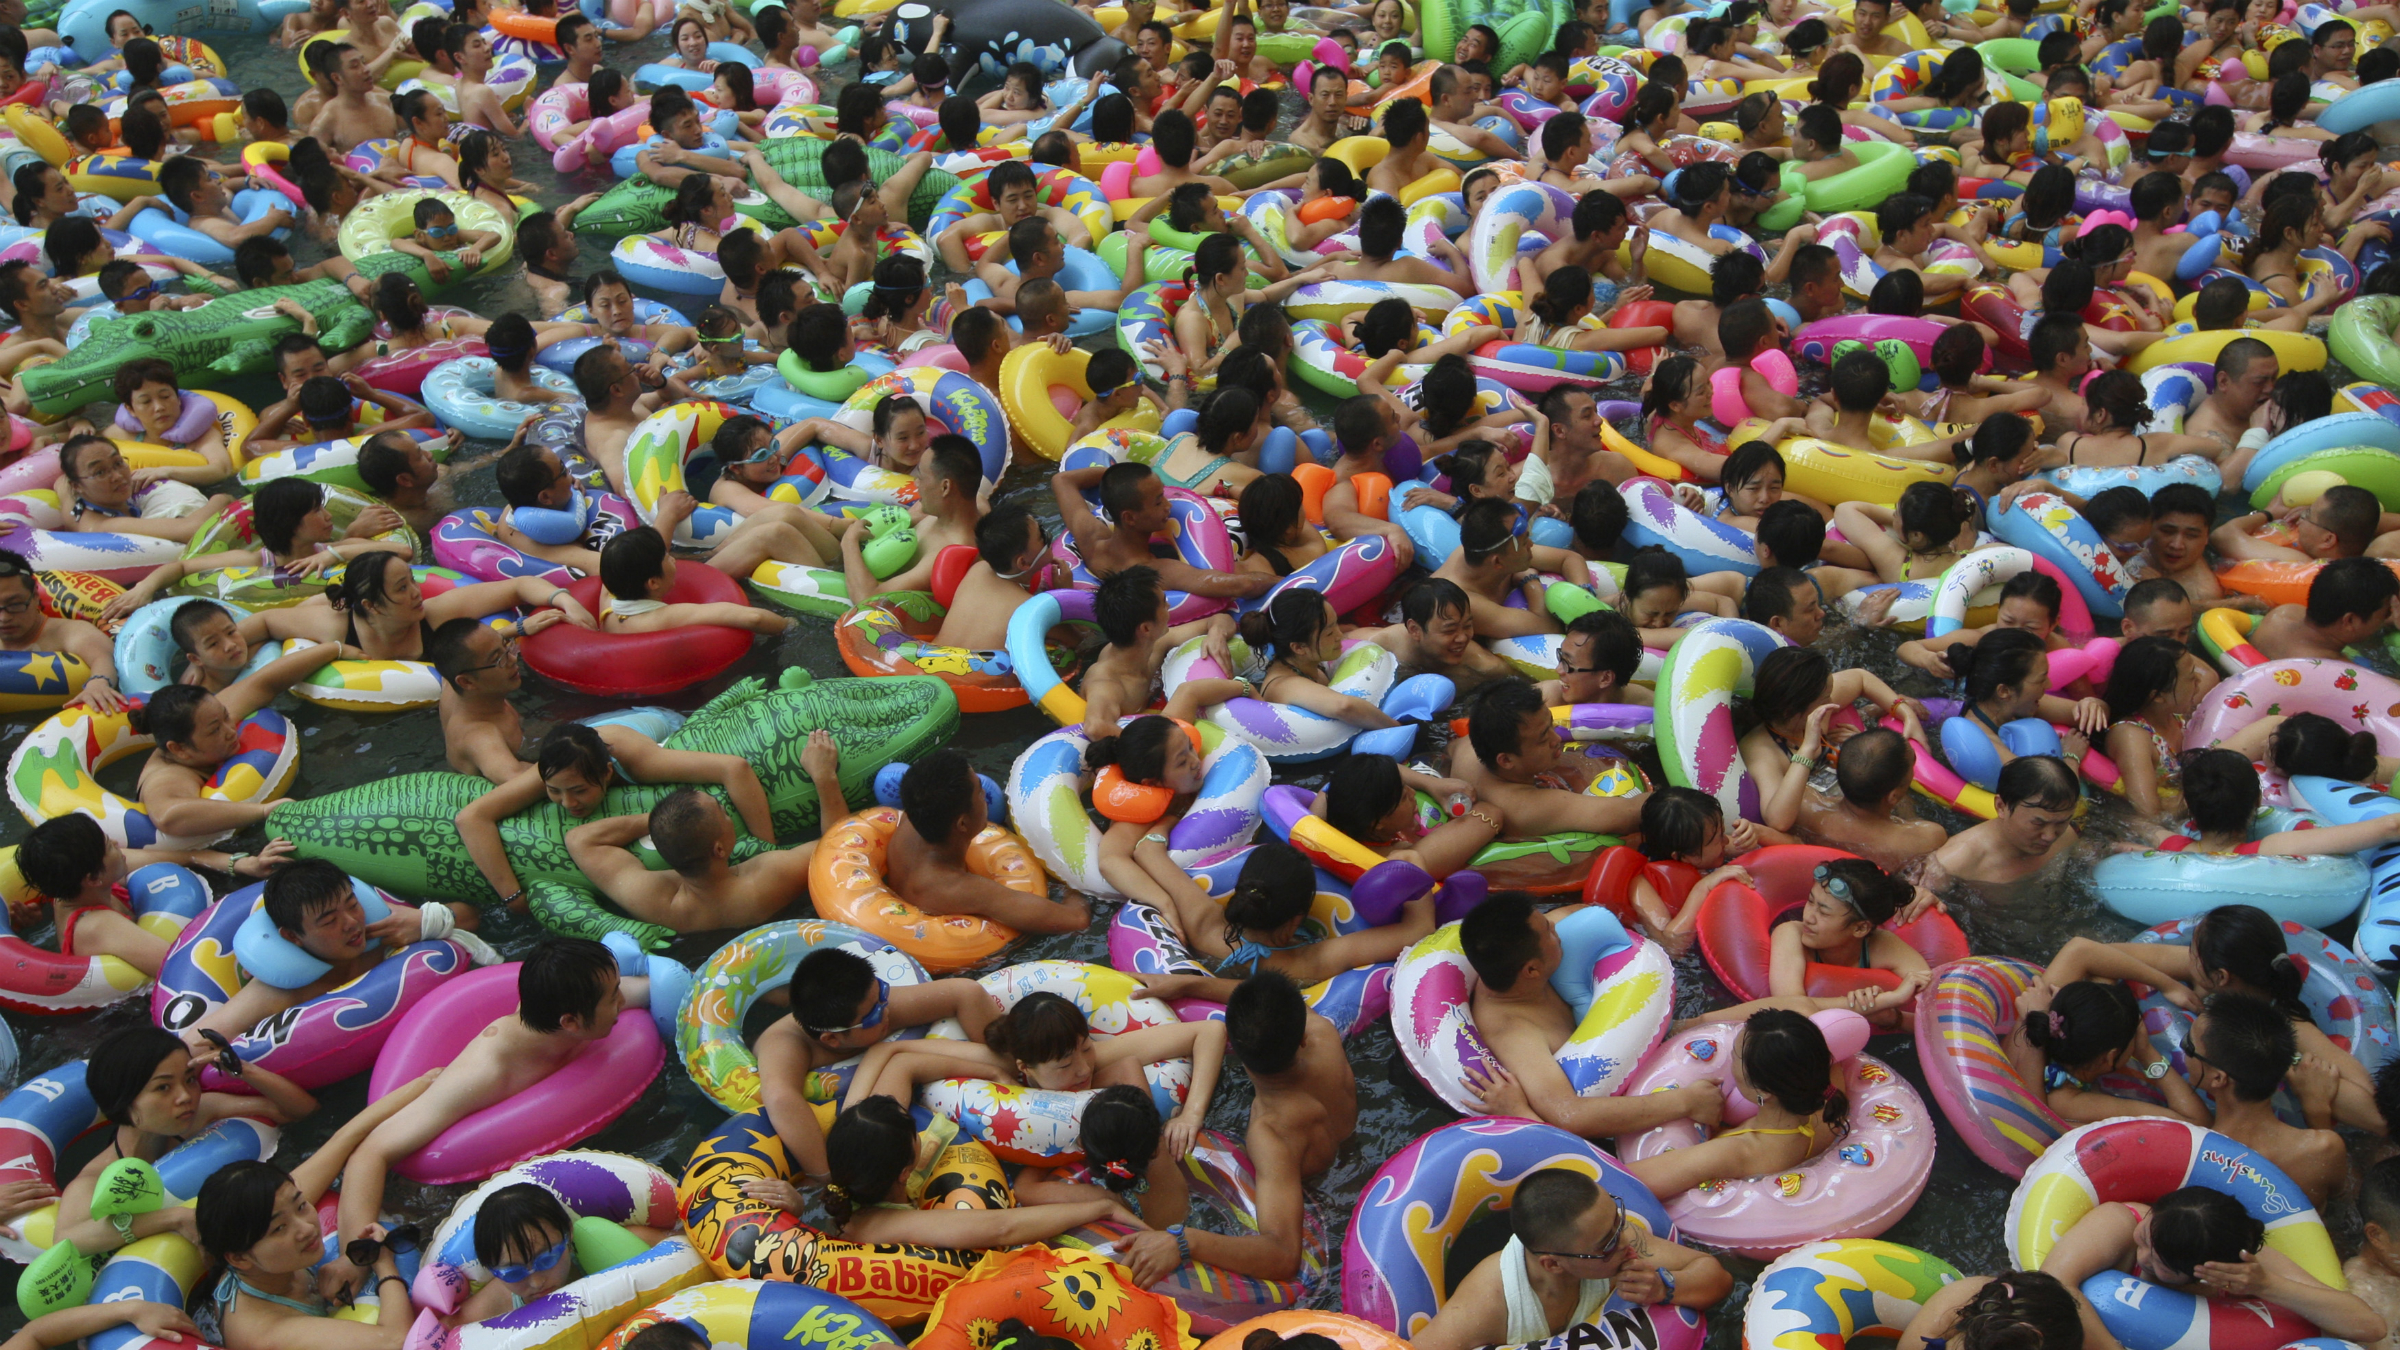 Visitors crowd an artificial wave pool at a tourist resort to escape the summer heat in Daying county of Suining, Sichuan province, July 27, 2013. Picture taken July 27, 2013. REUTERS/China Daily